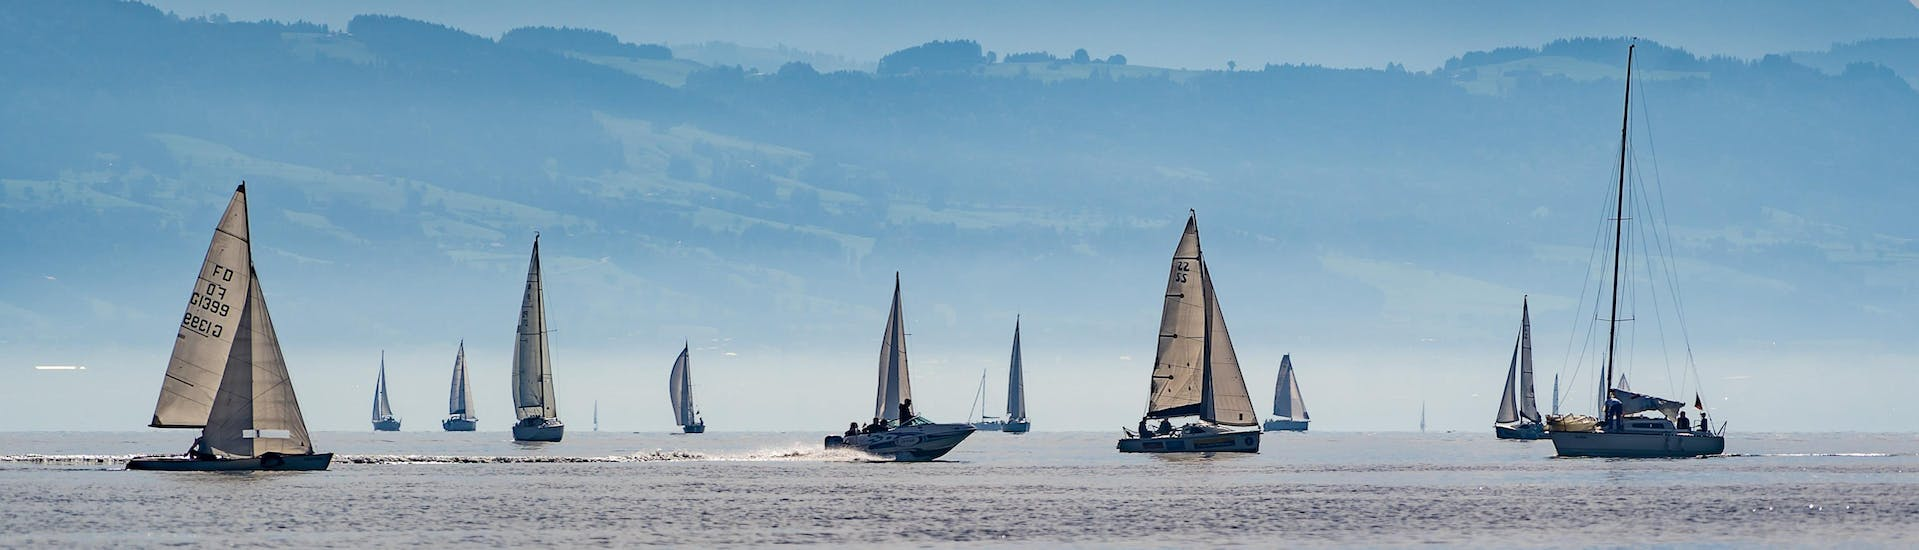 Sailboats are sailing over Lake Constance, the perfect location for doing boat trips.